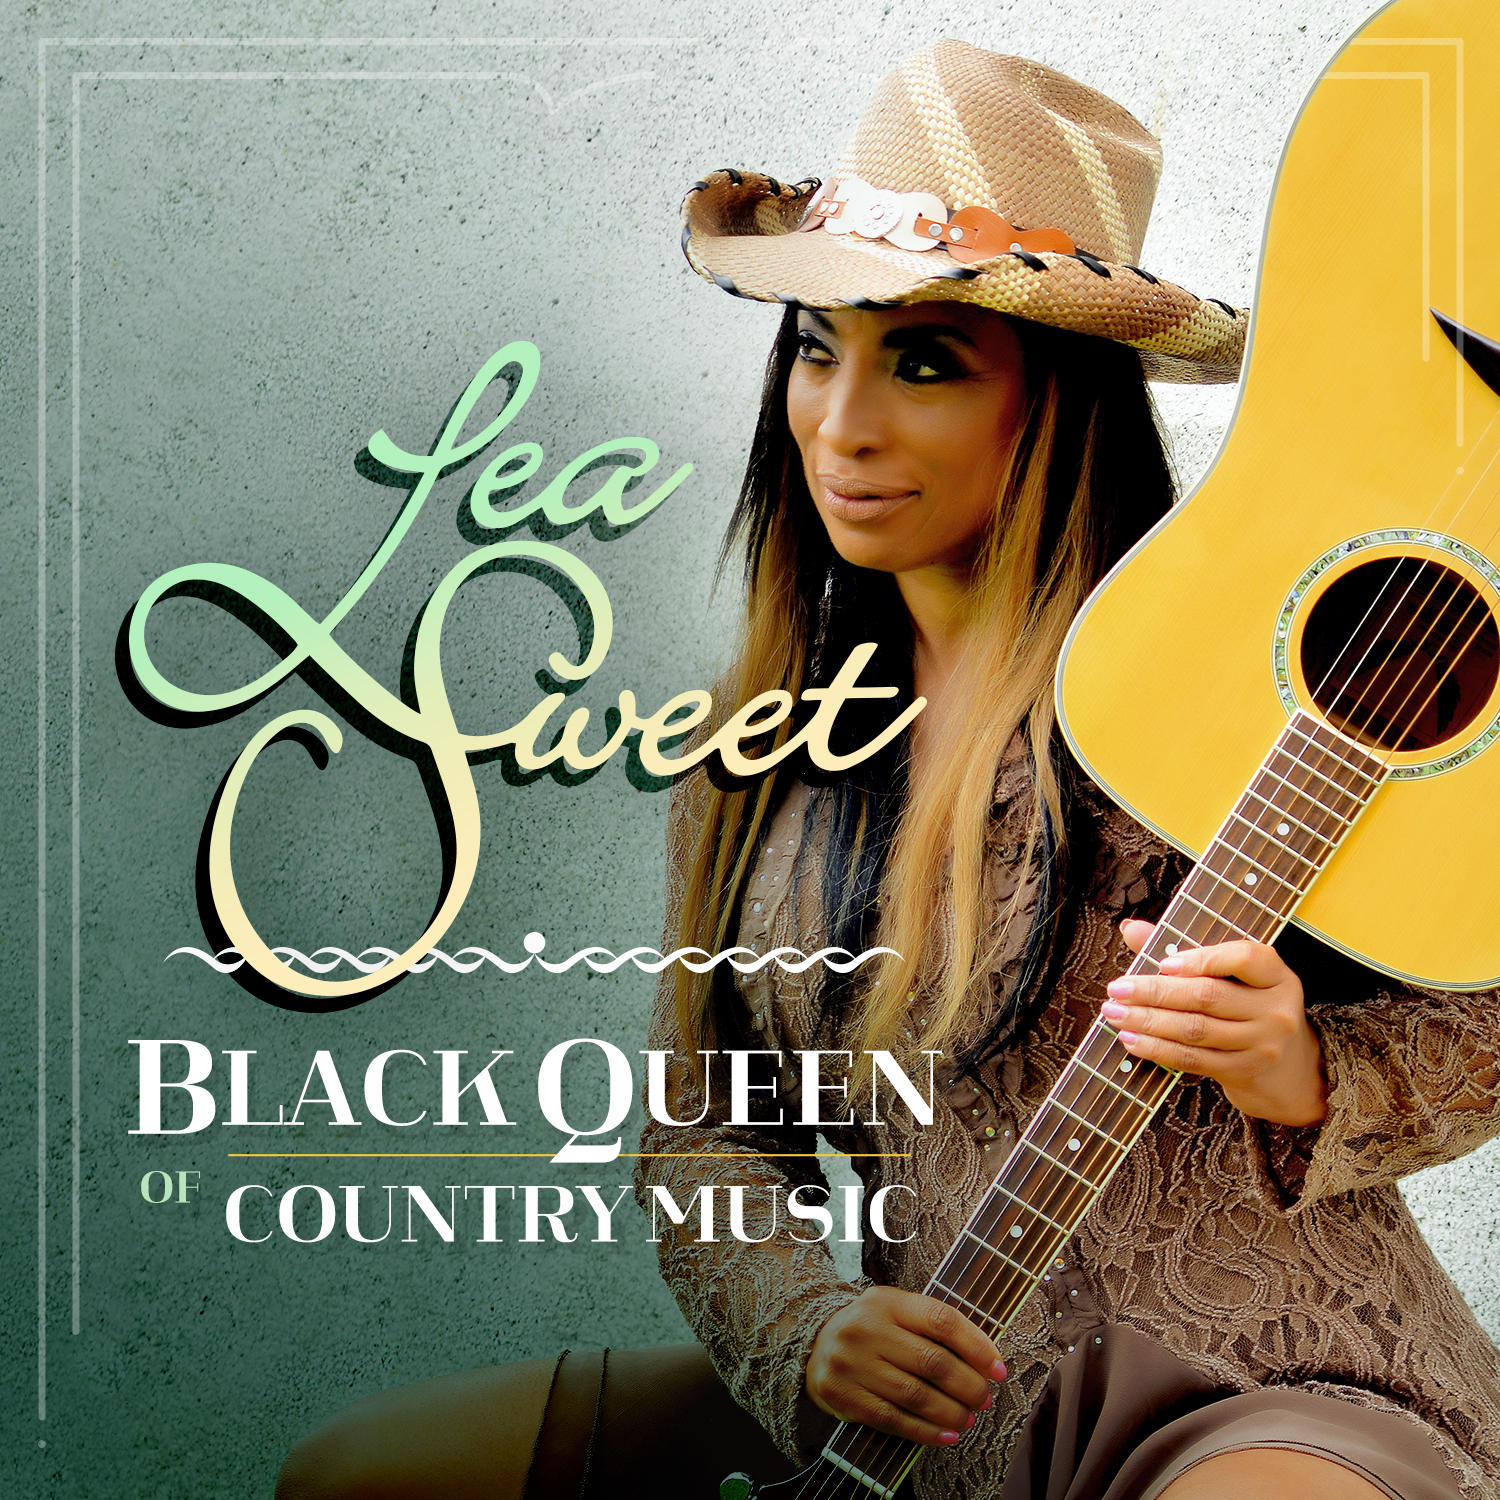 The Black Queen of Country Music, Lea Sweet, Releases Her Eponymous Album with Great Acclaim